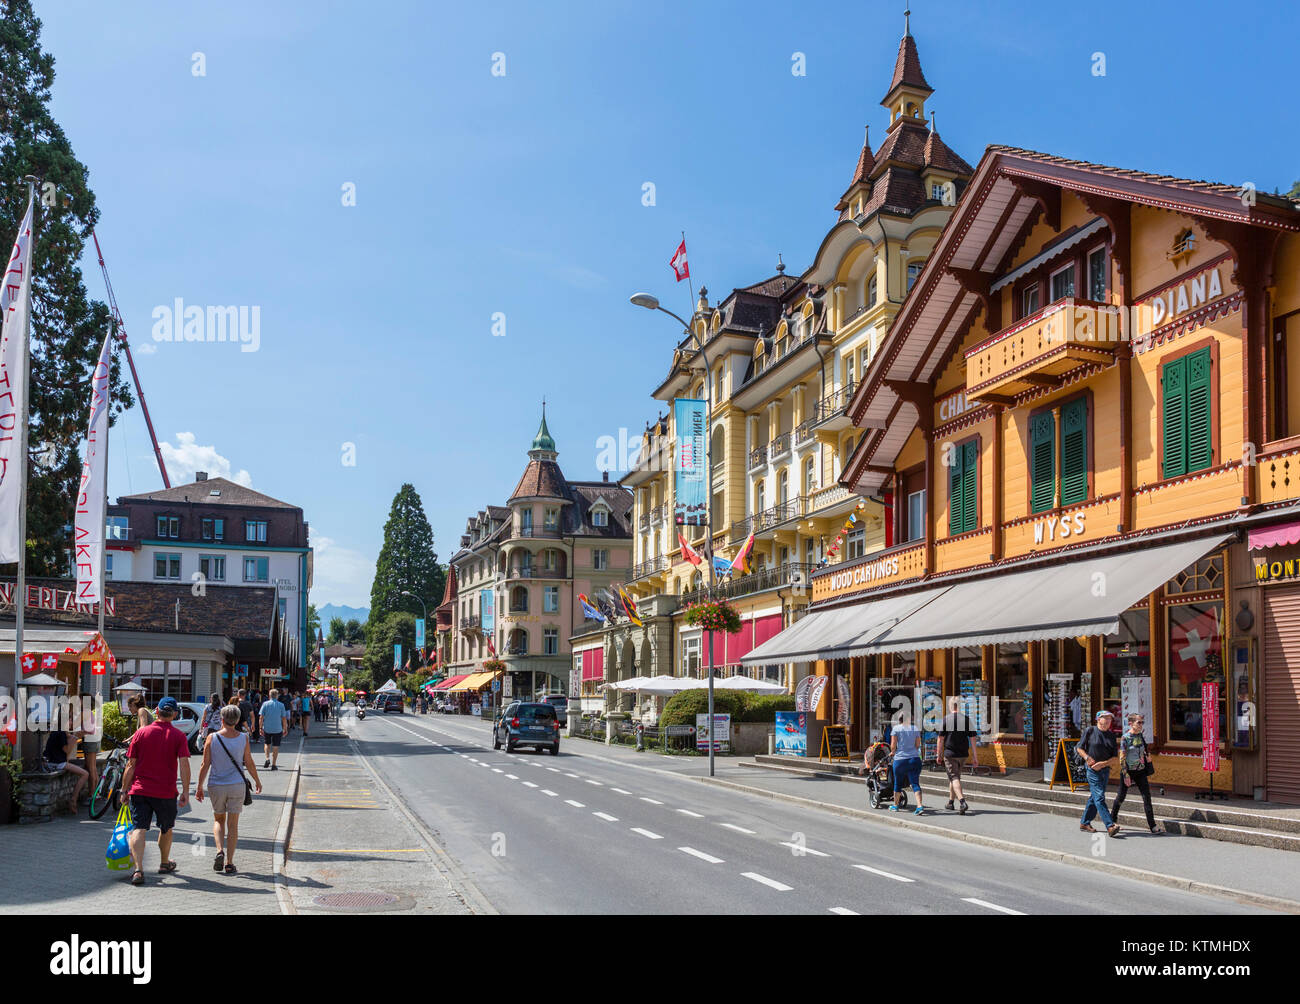 Höheweg, the main street in Interlaken, Switzerland - Stock Image